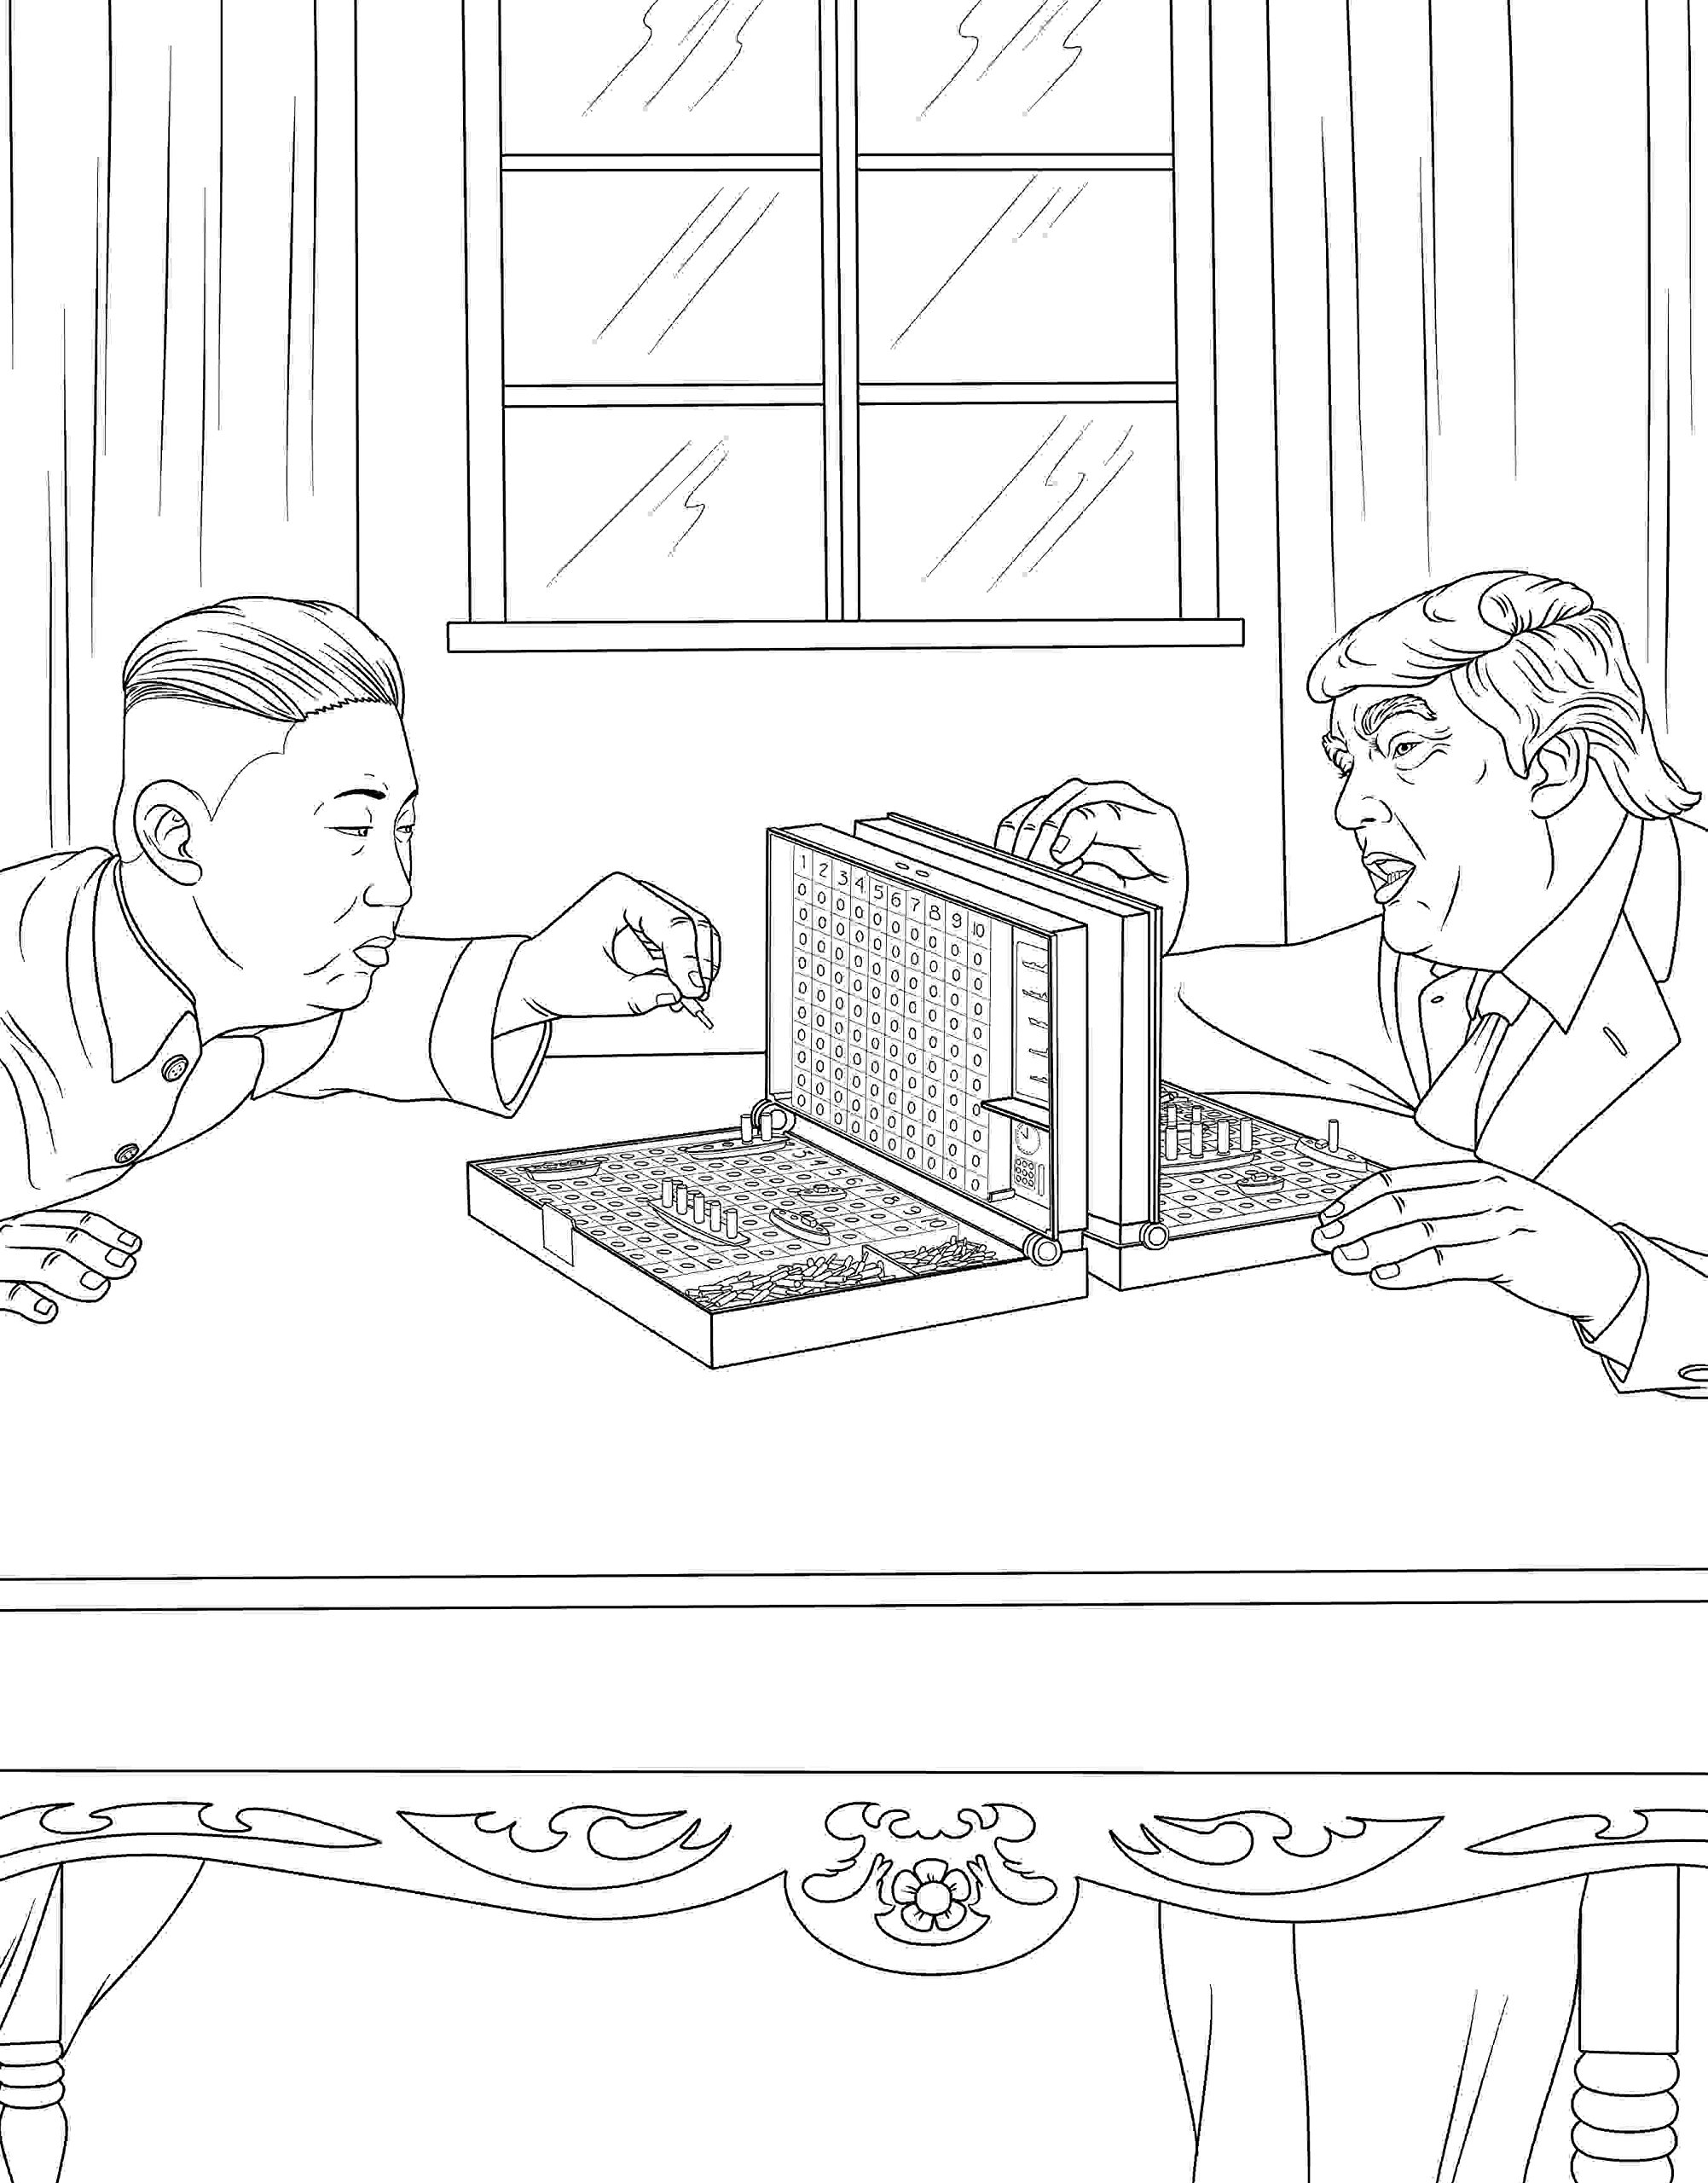 Coloring book download zip - Amazon Com The Trump Coloring Book 9781682610282 M G Anthony Books